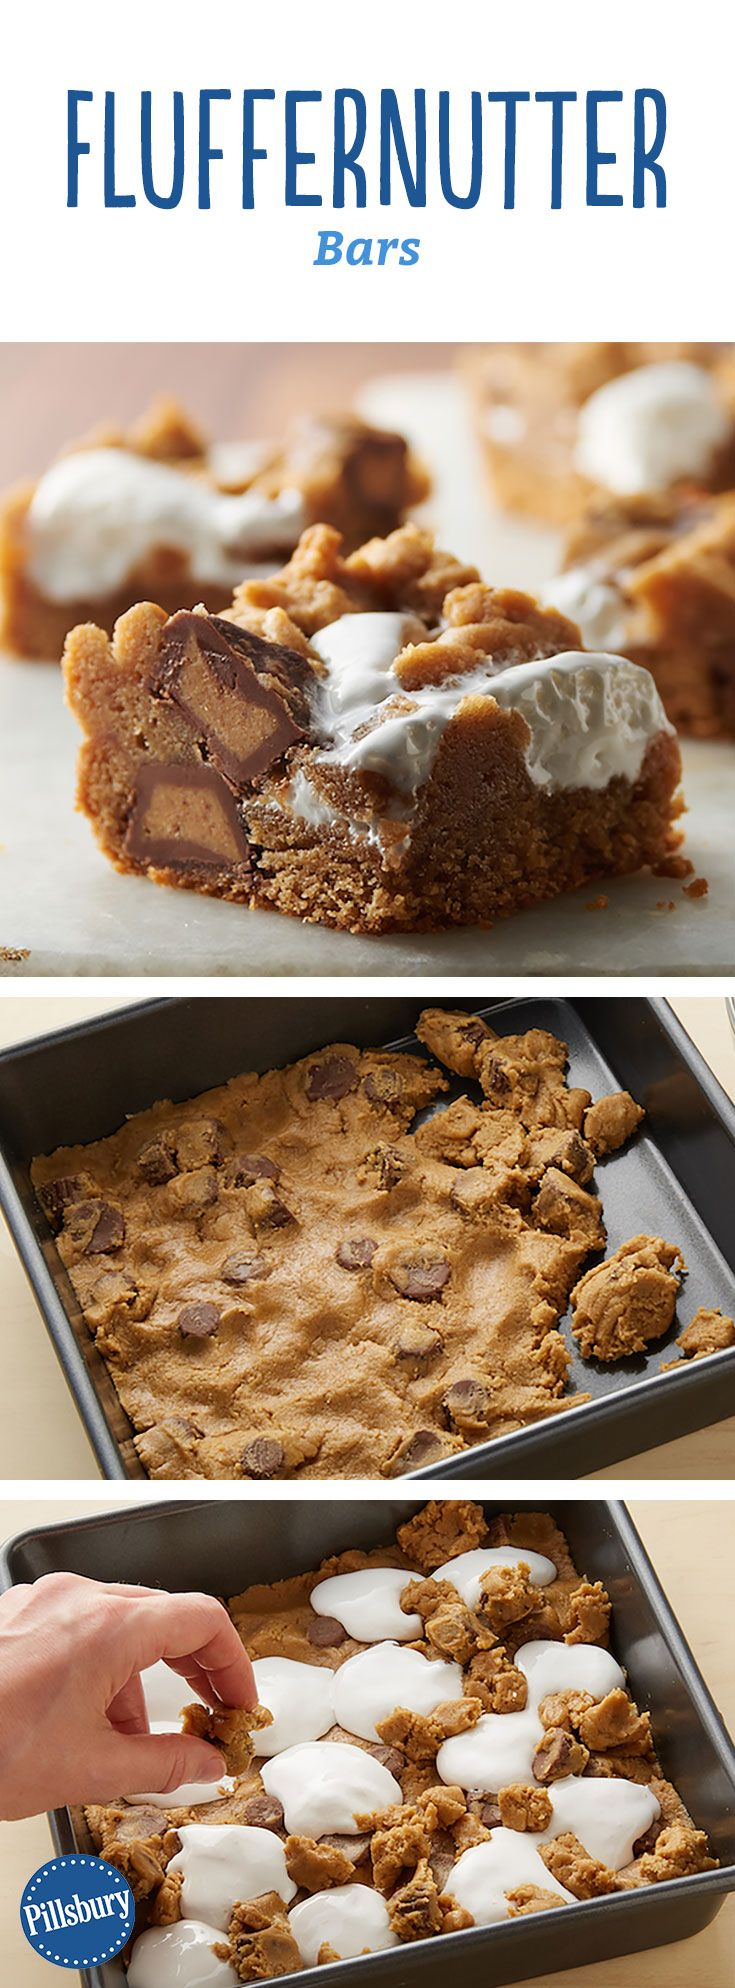 Fluffernutter Bars: Marshmallow and peanut butter come together in these gooey, indulgent bars.